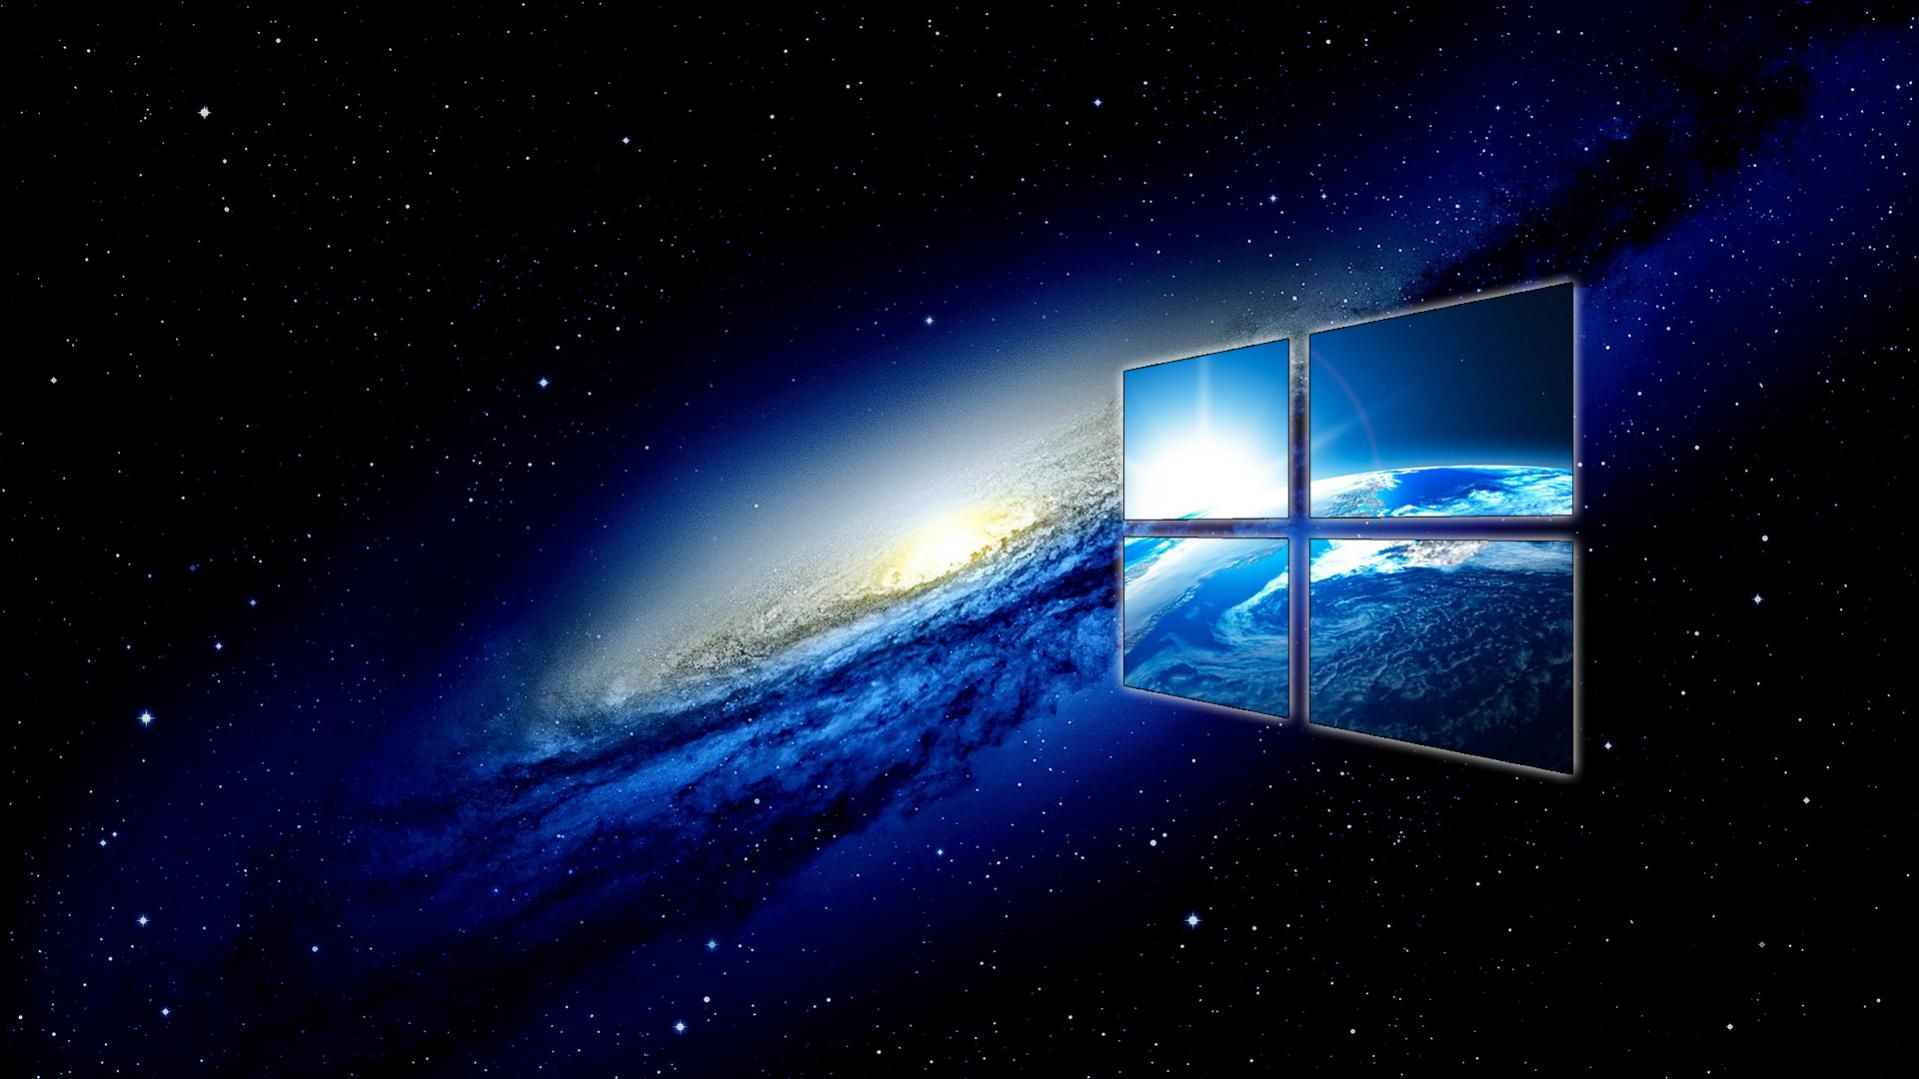 Windows 10 Wallpapers Gadgetssaqibsomal 2016 01 02 Os Xp Is Still Bigger Than 89 Attachment 4